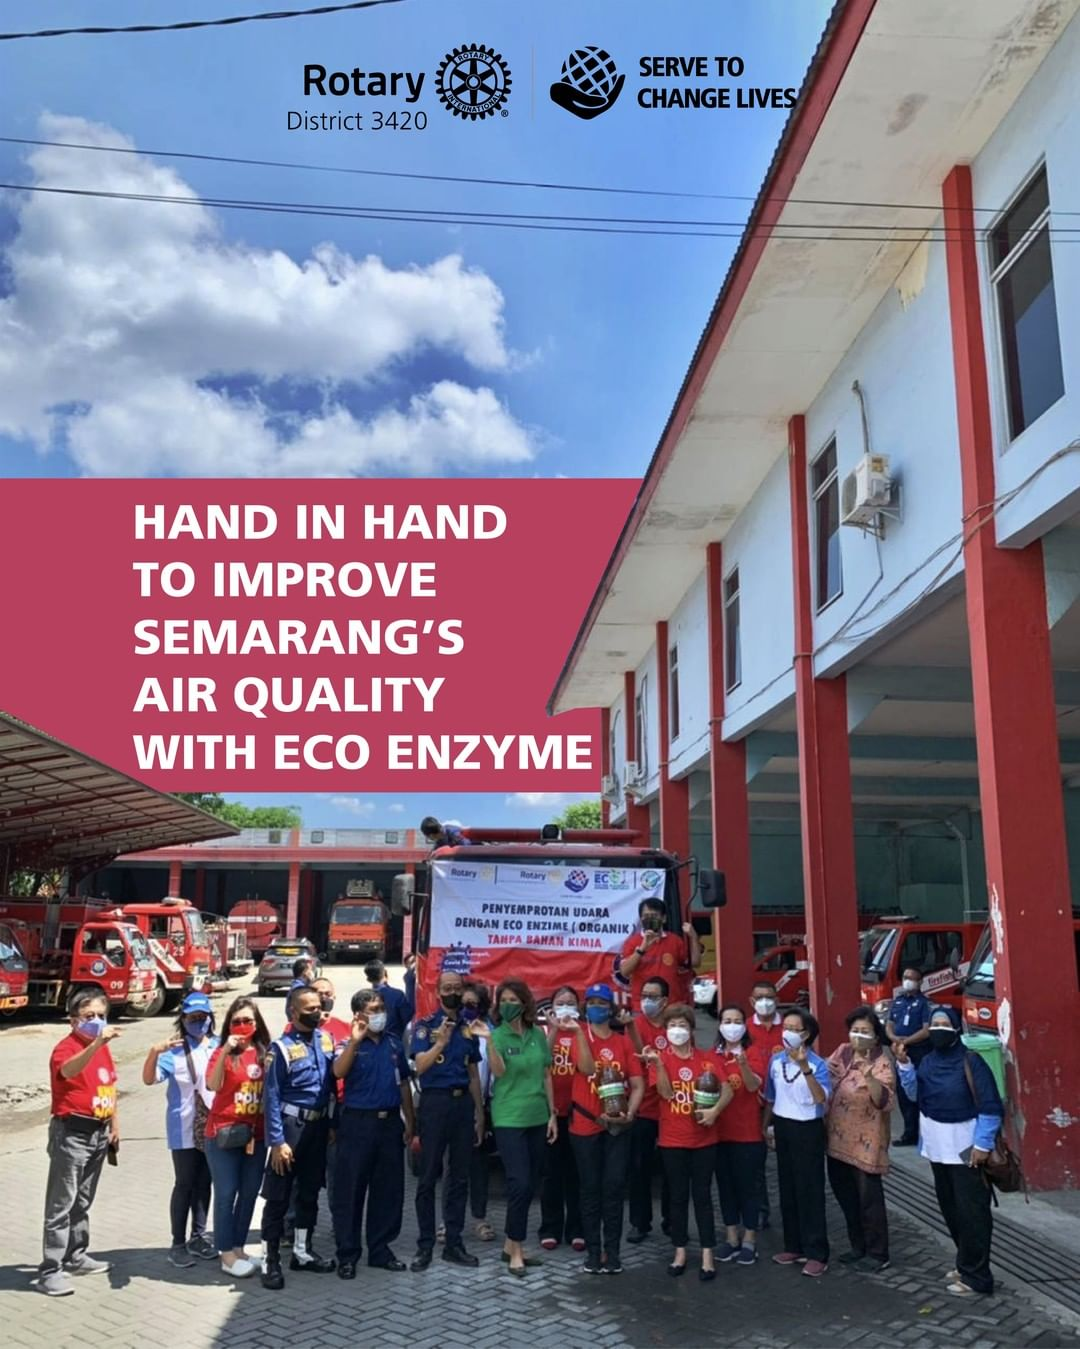 Hand in Hand to Improve Semarang's Air Quality with Eco Enzyme